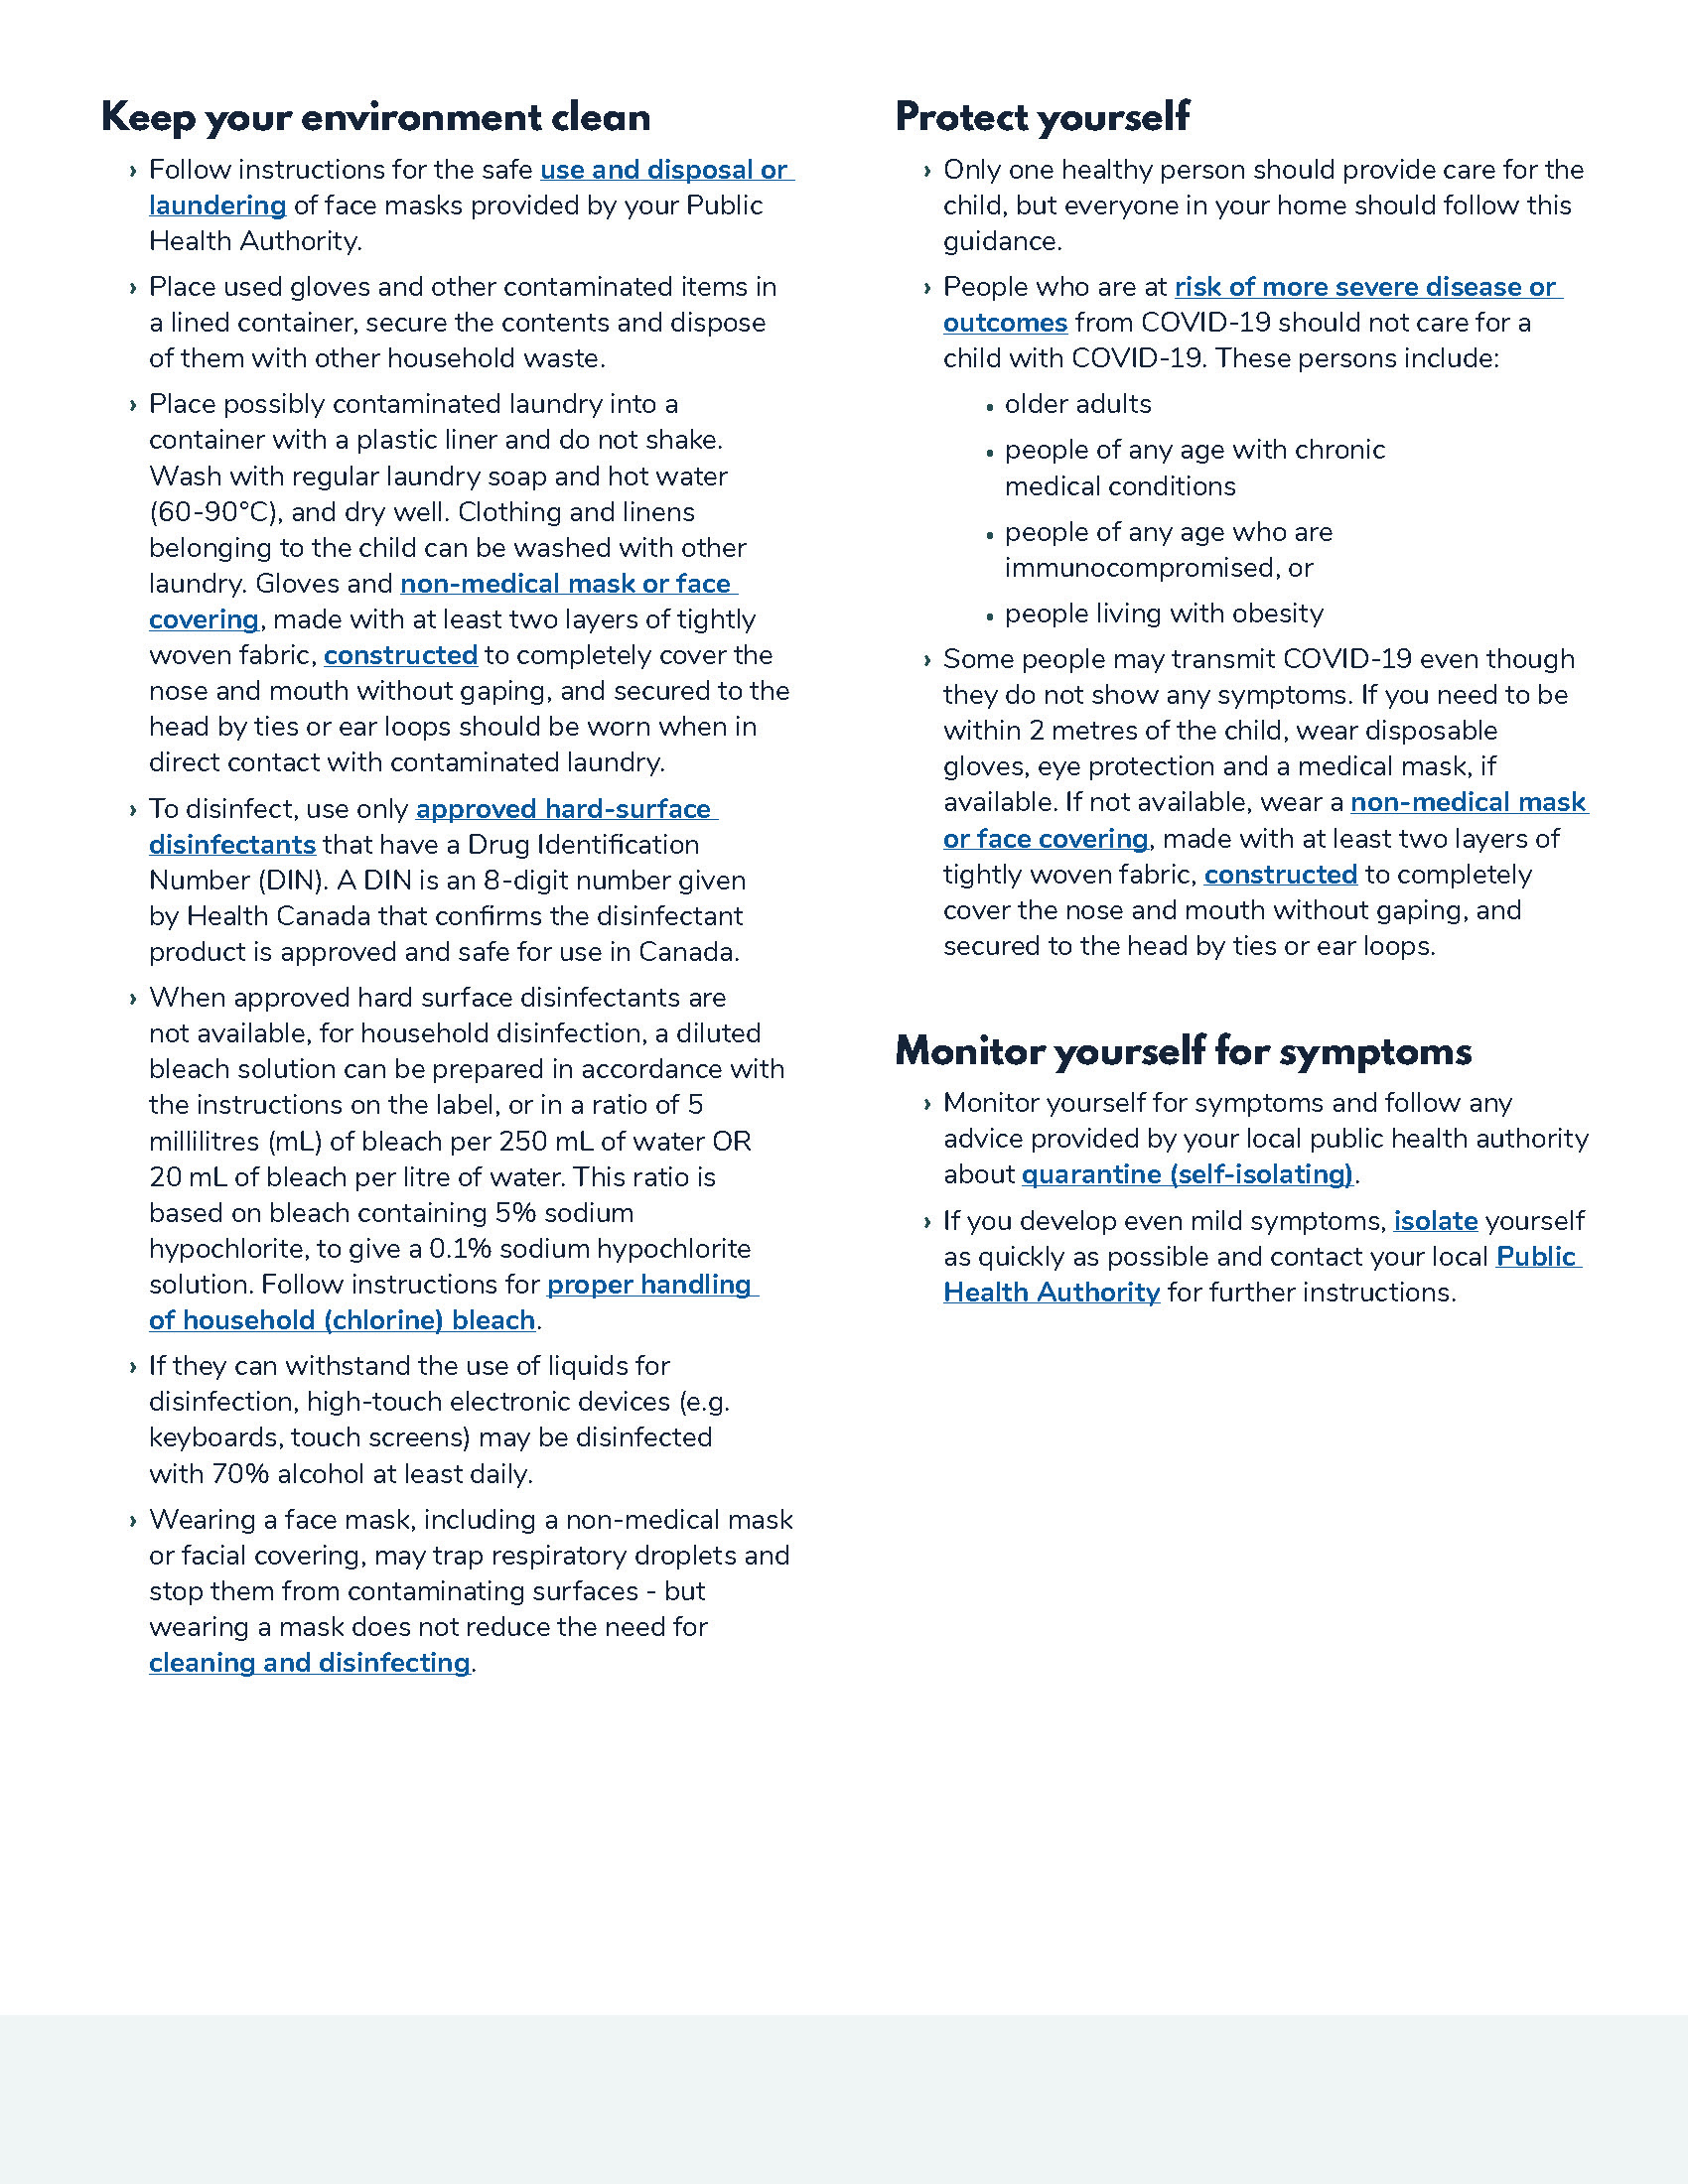 Advice for Mothers During COVID-19 - Page 2